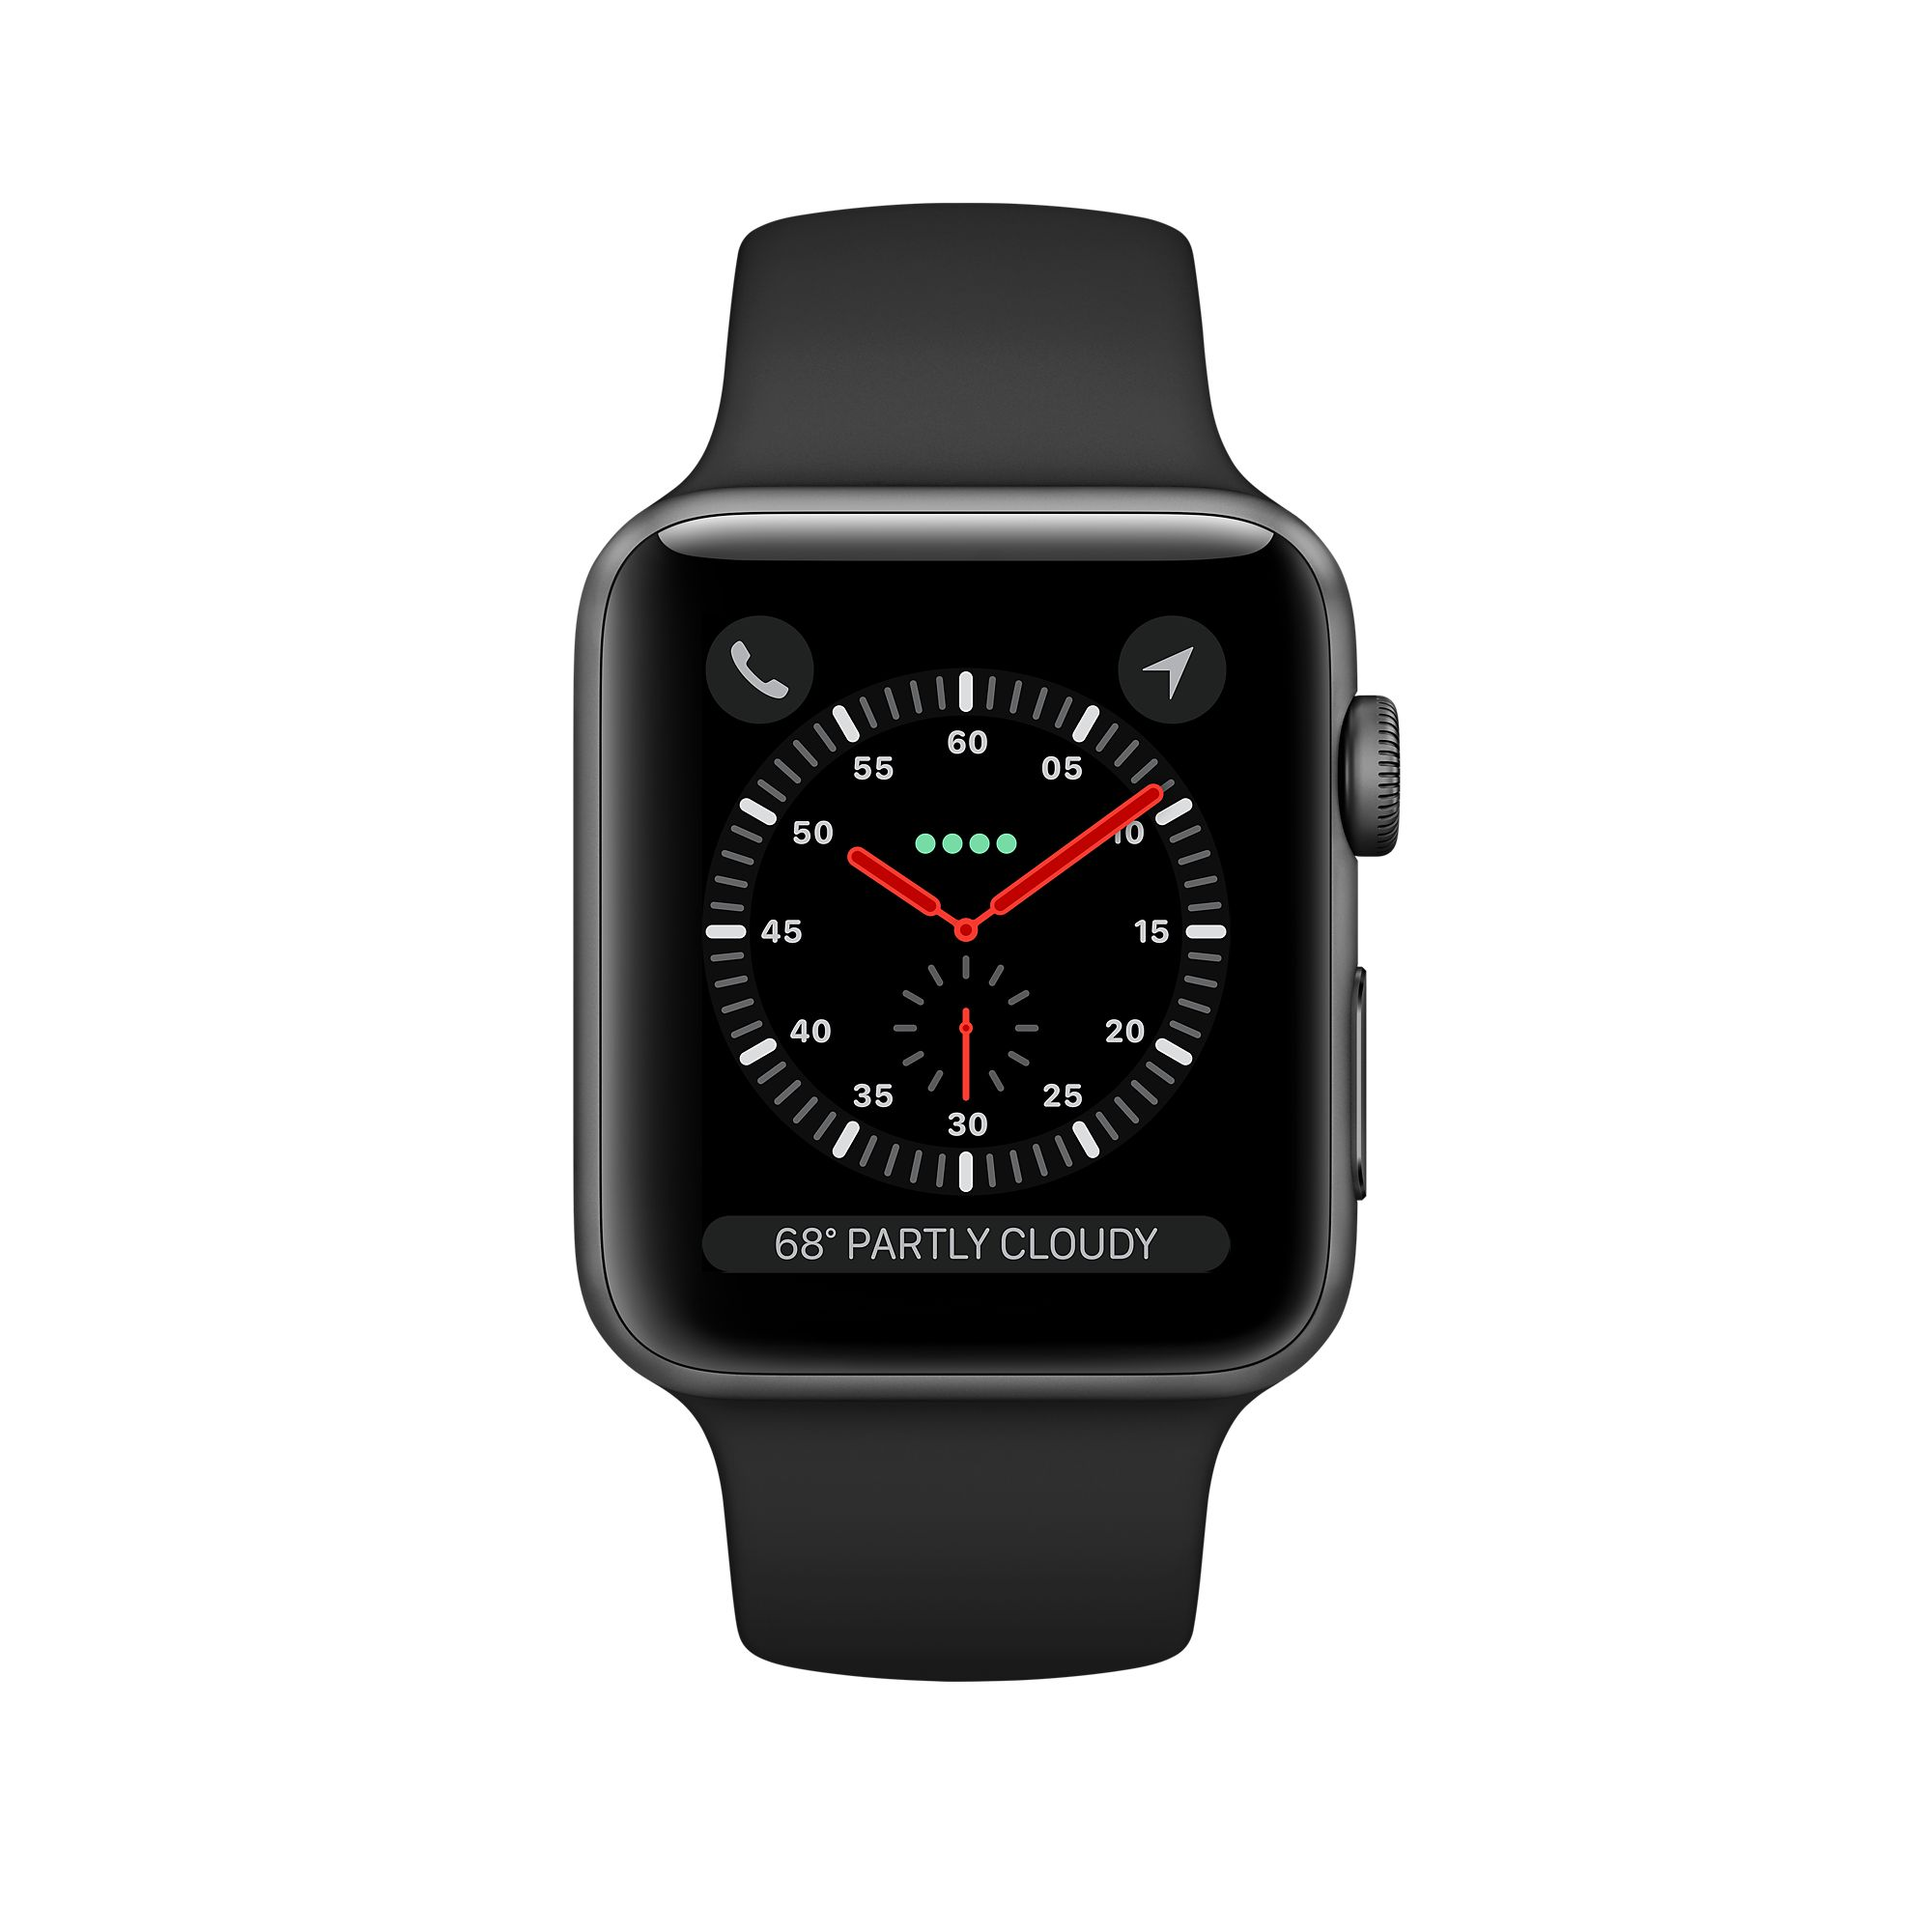 APPLE WATCH SERIES 3 GPS 38MM, SPACE GRAY ALUMINUM - GRAY SPORT BAND